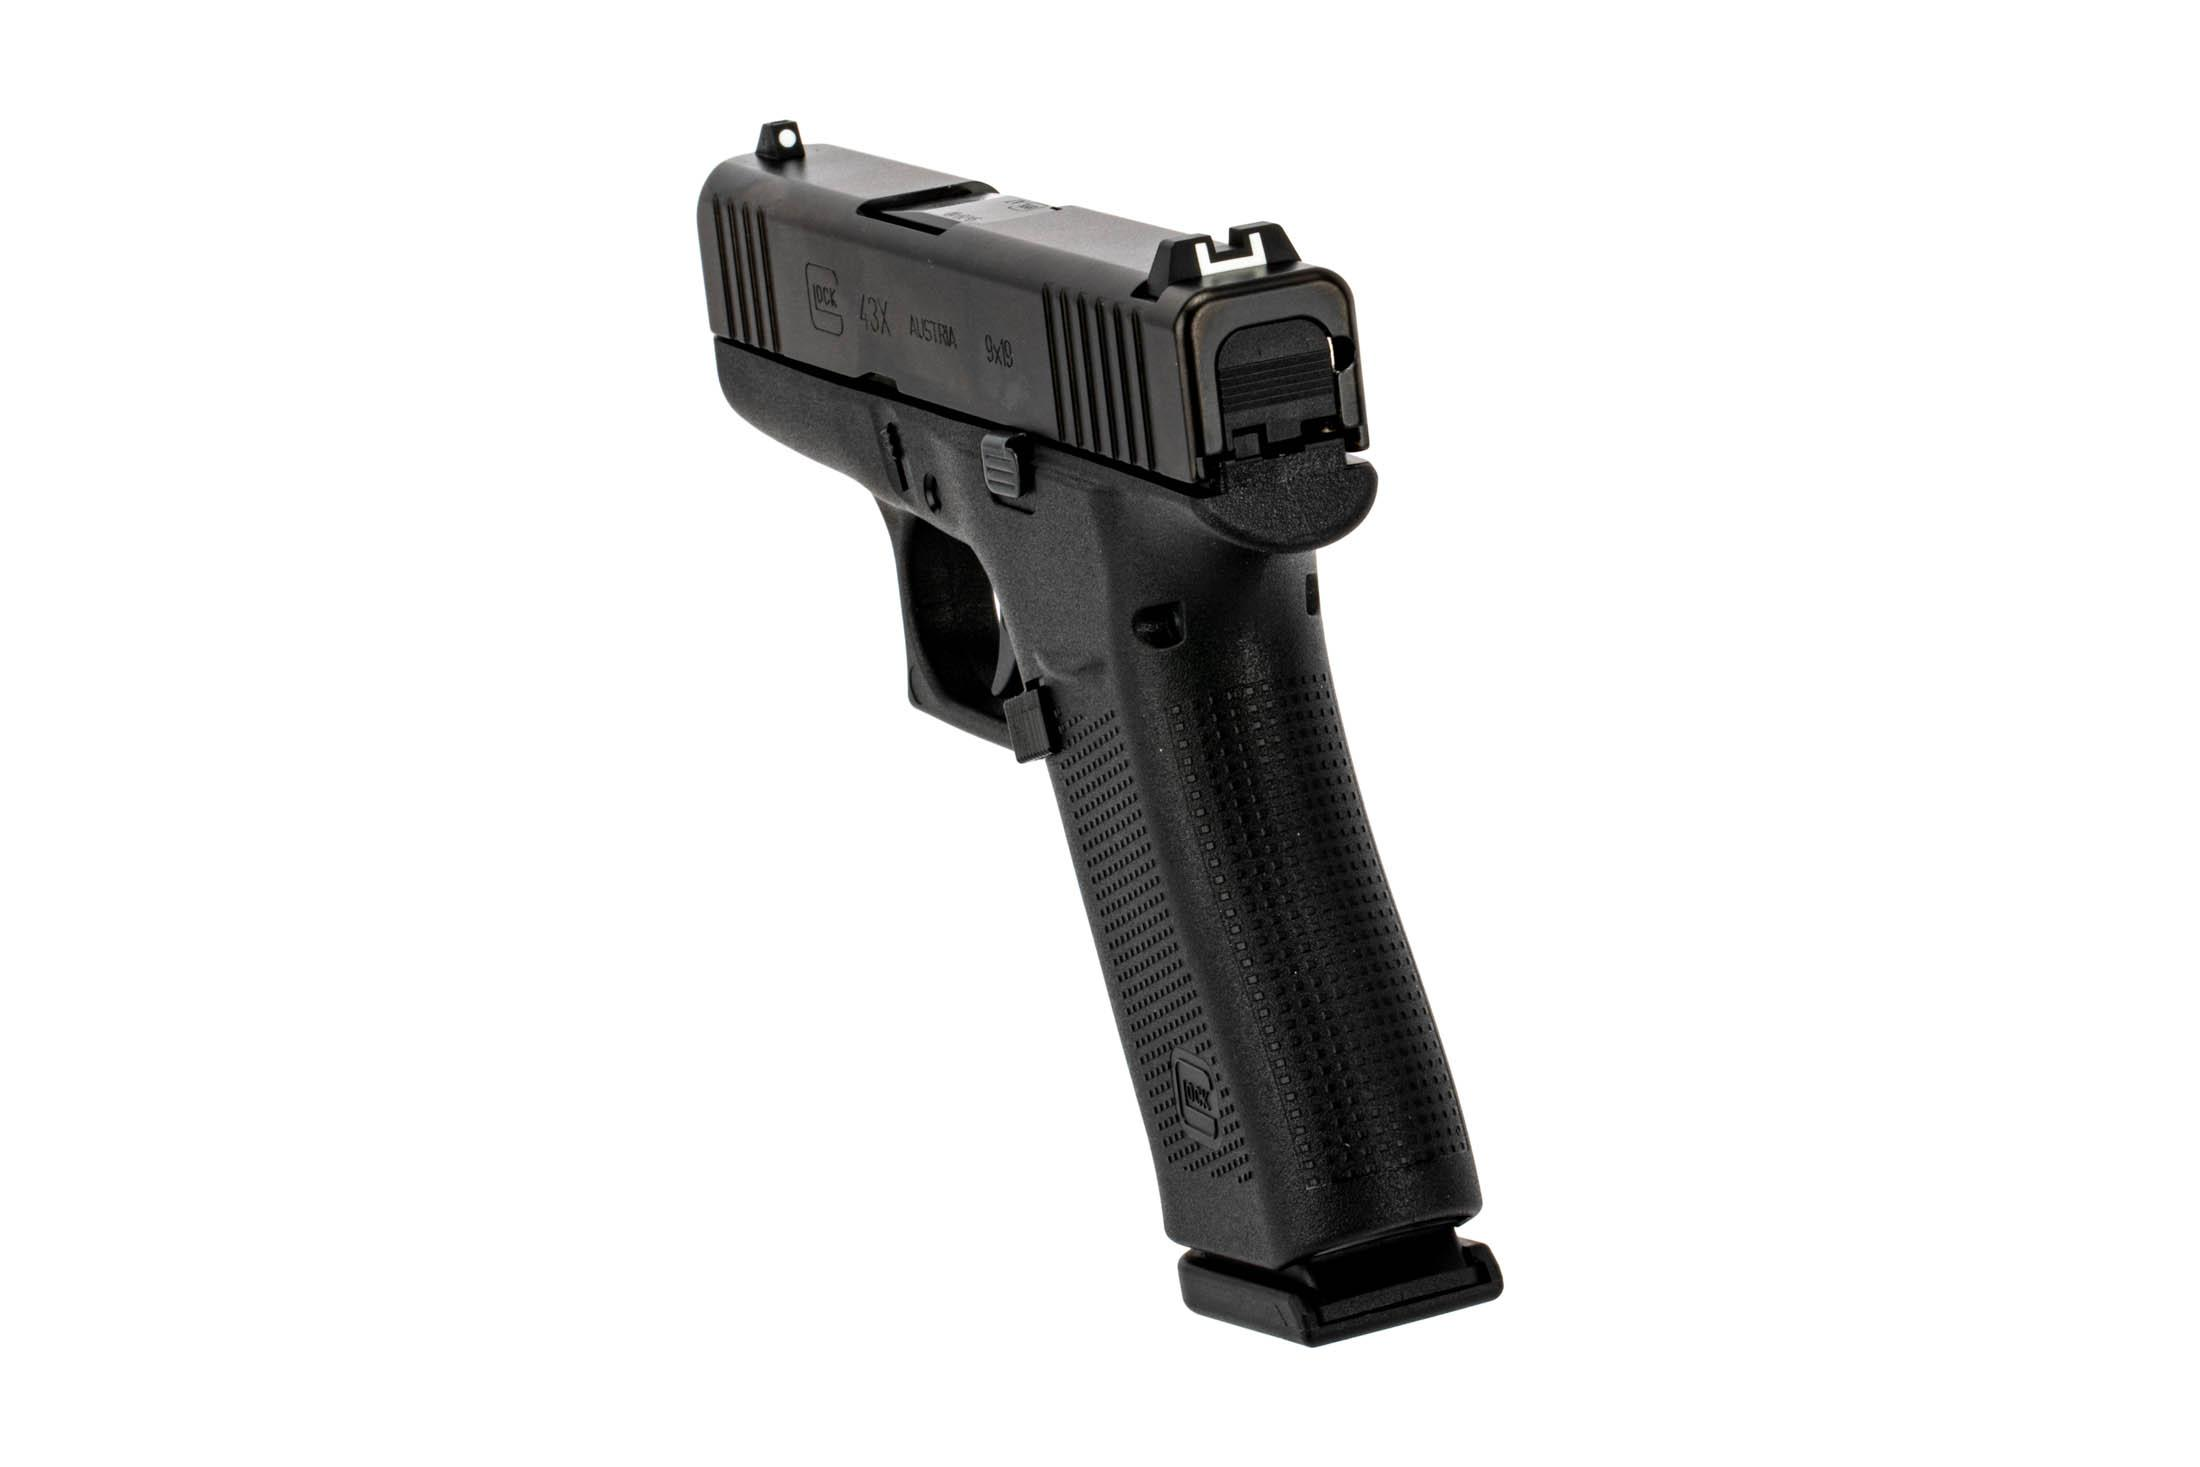 Glock black G43x sub compact handgun in 9mm Luger features reversible mag release and standard sights.